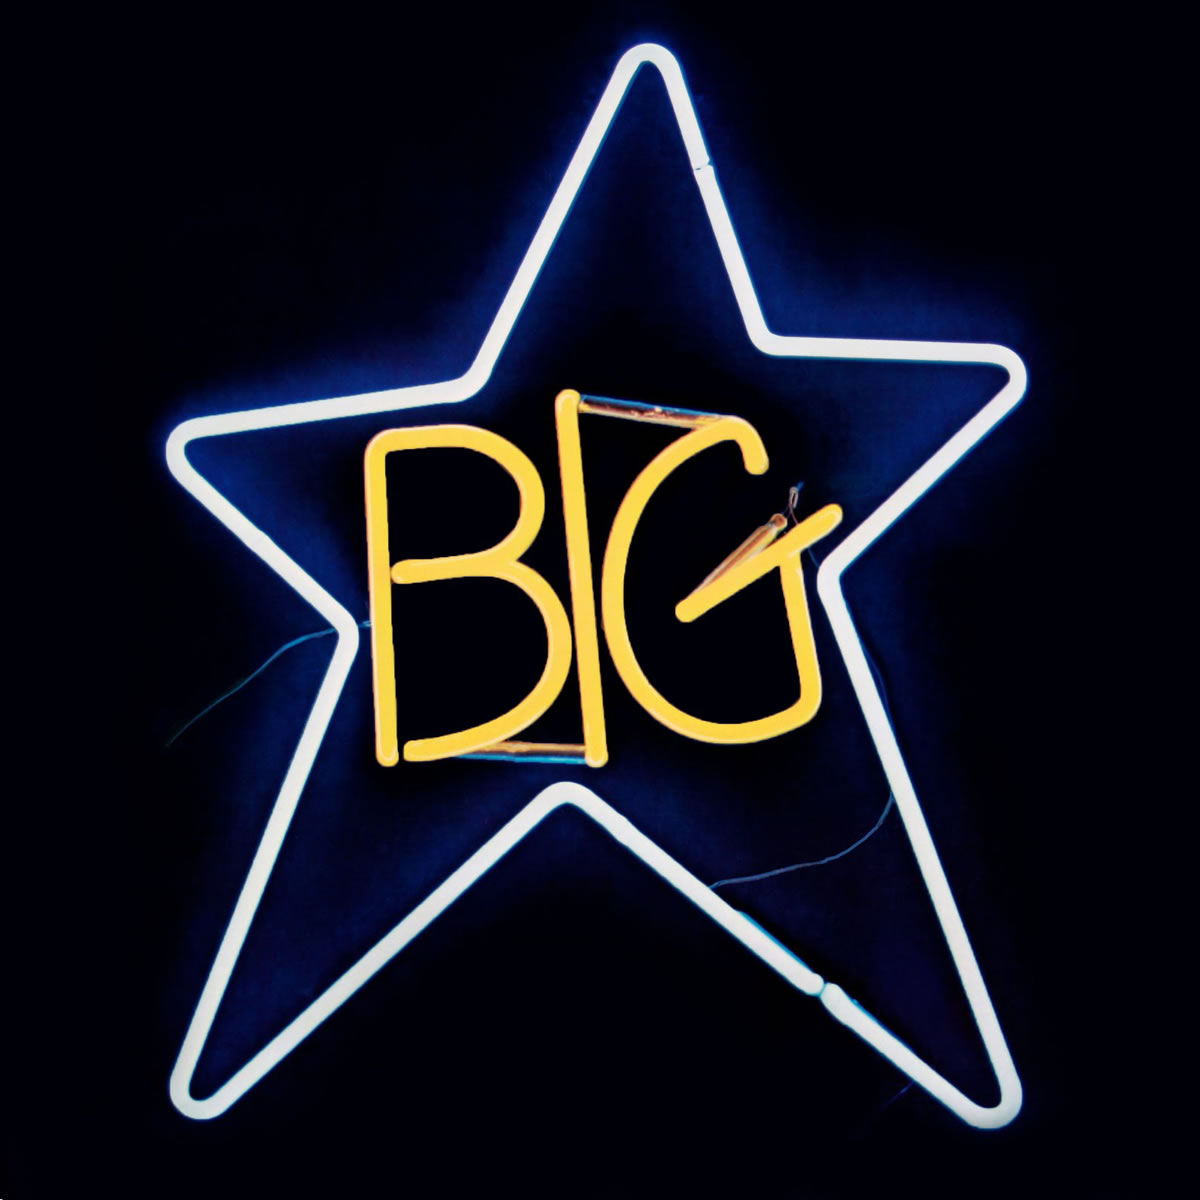 12-big-star-1-record